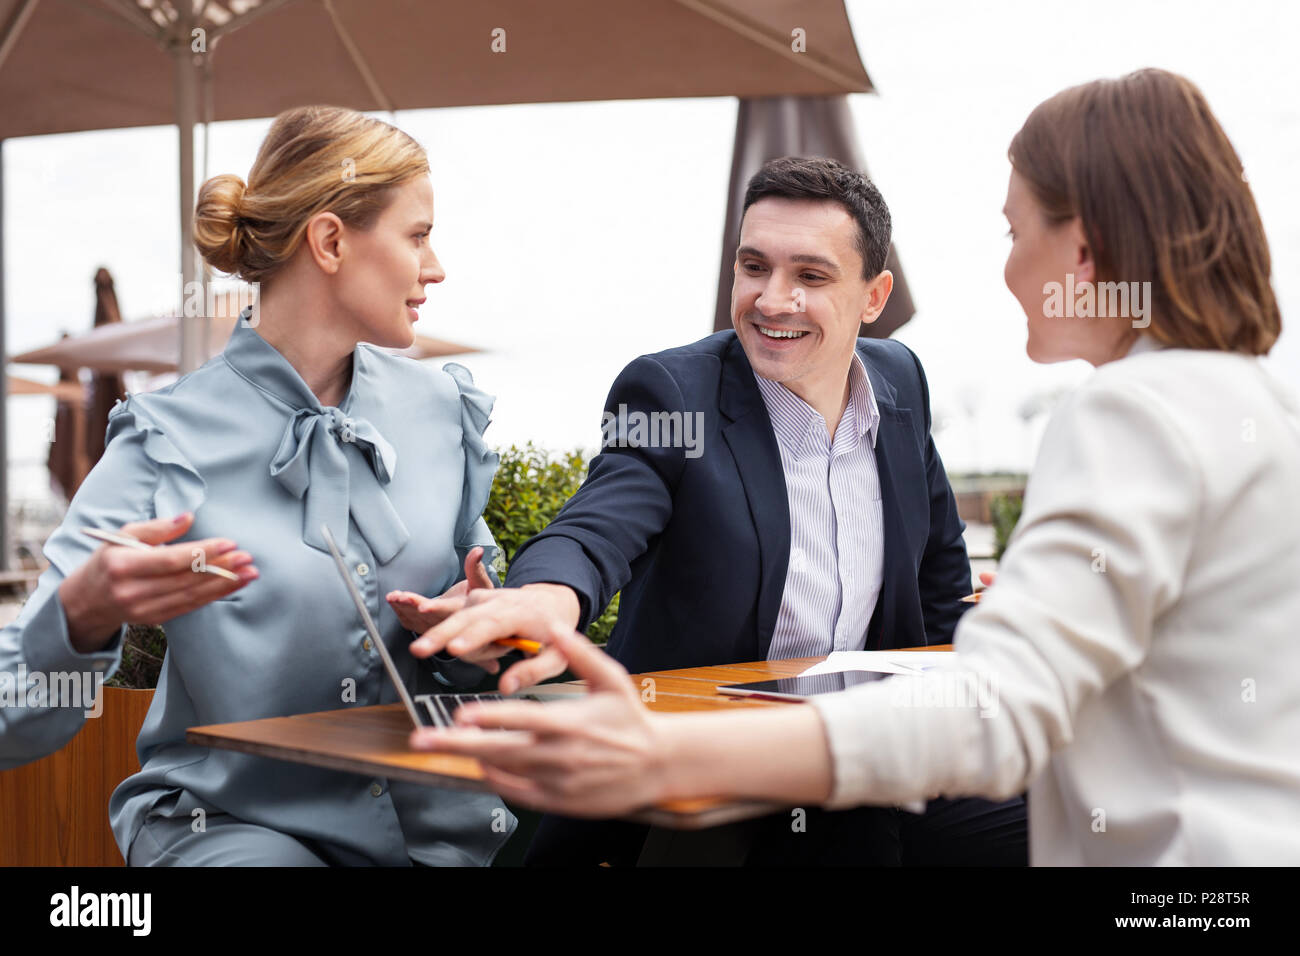 Businessman feeling happy after receiving business letter - Stock Image